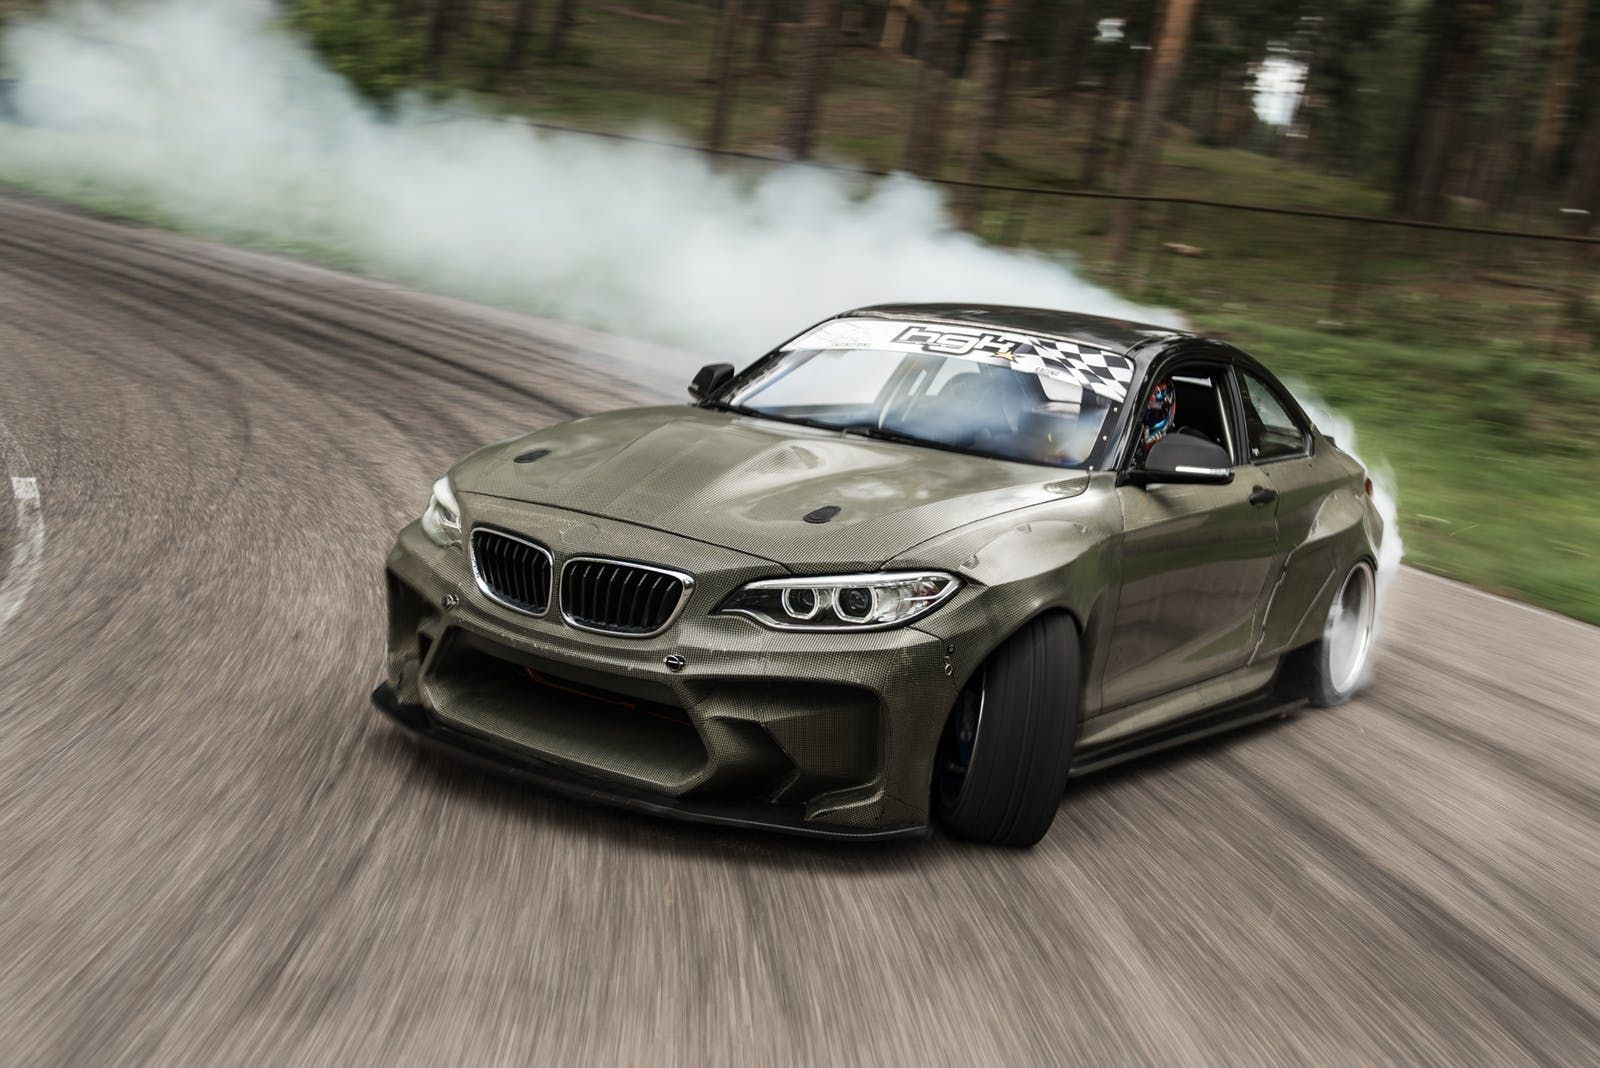 Gallery The Amazing Hgk Eurofighter Bmw Drifting Cars Bmw Car